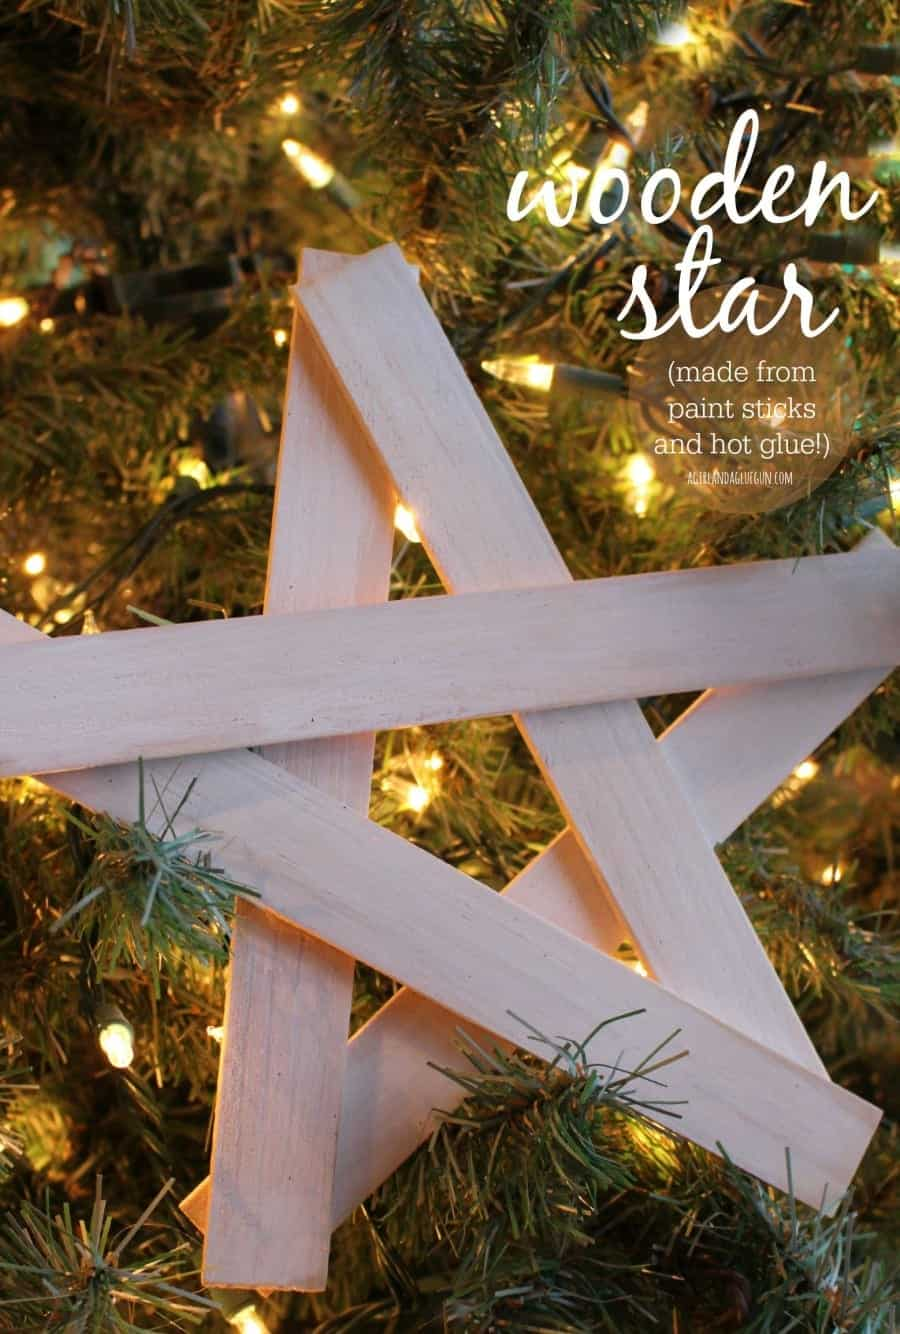 wooden star made from paint sticks and hot glue